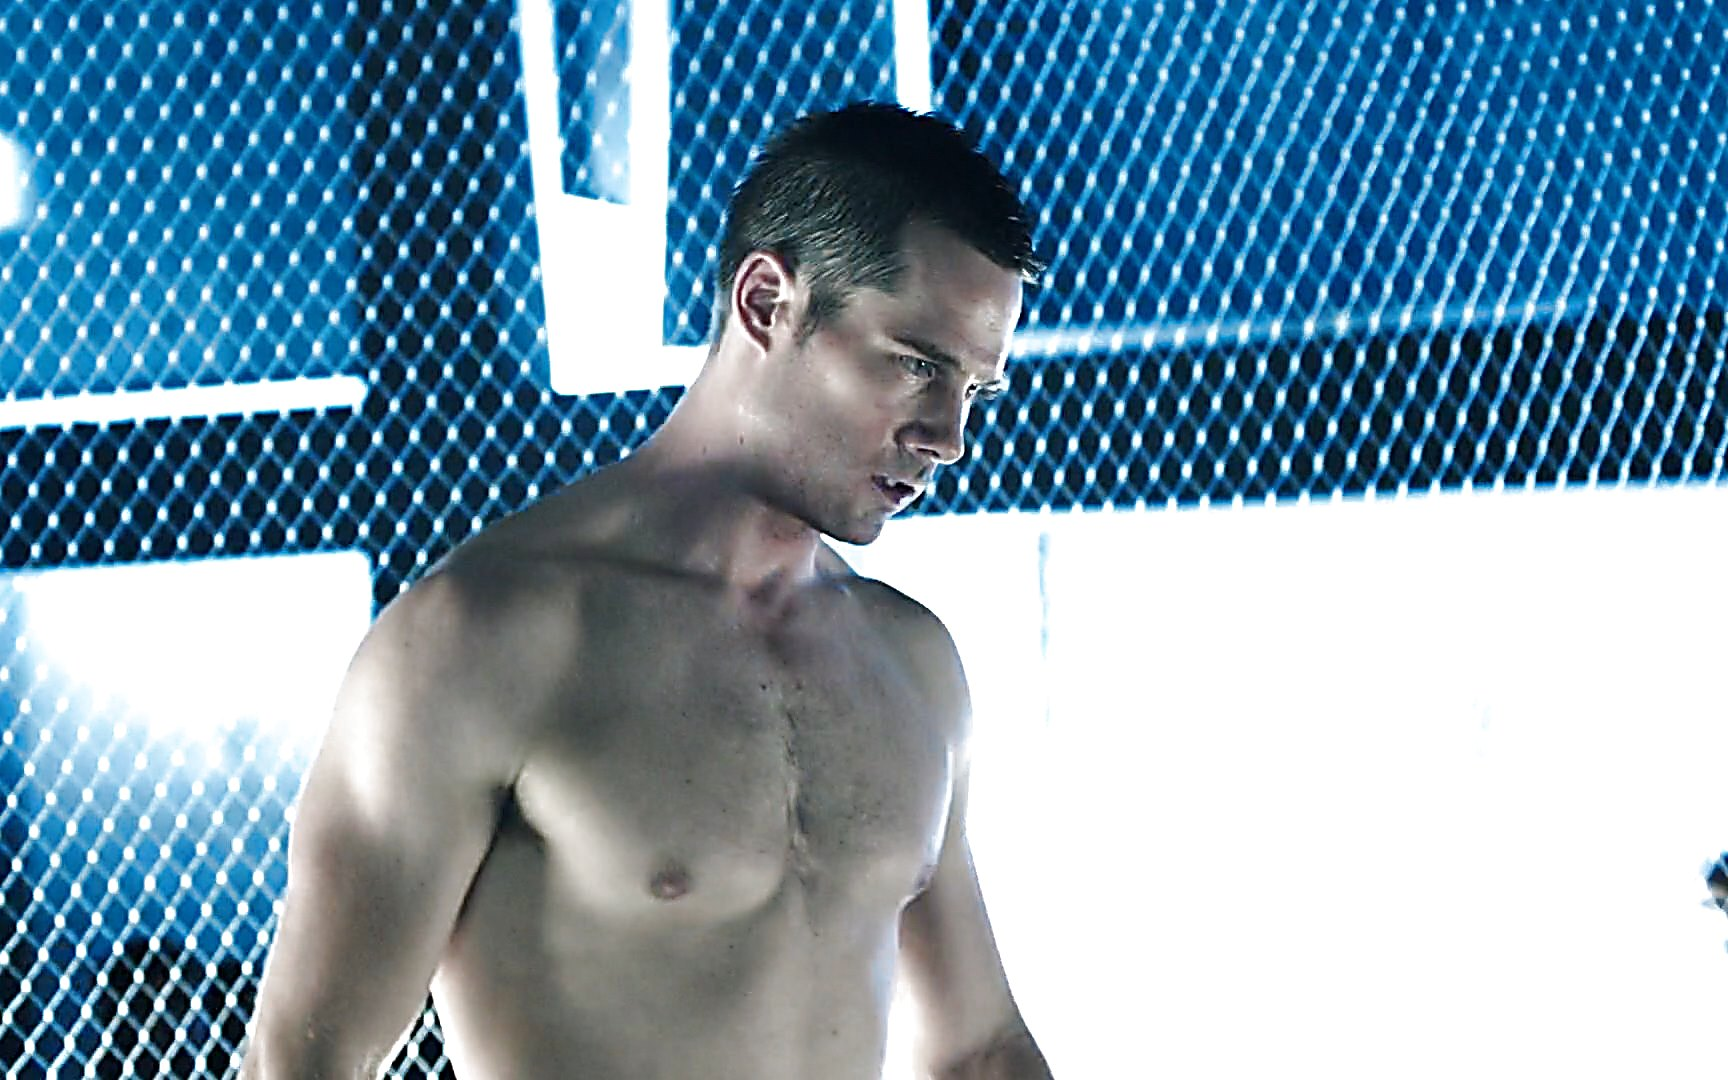 Luke Macfarlane sexy shirtless scene July 11, 2015, 8pm